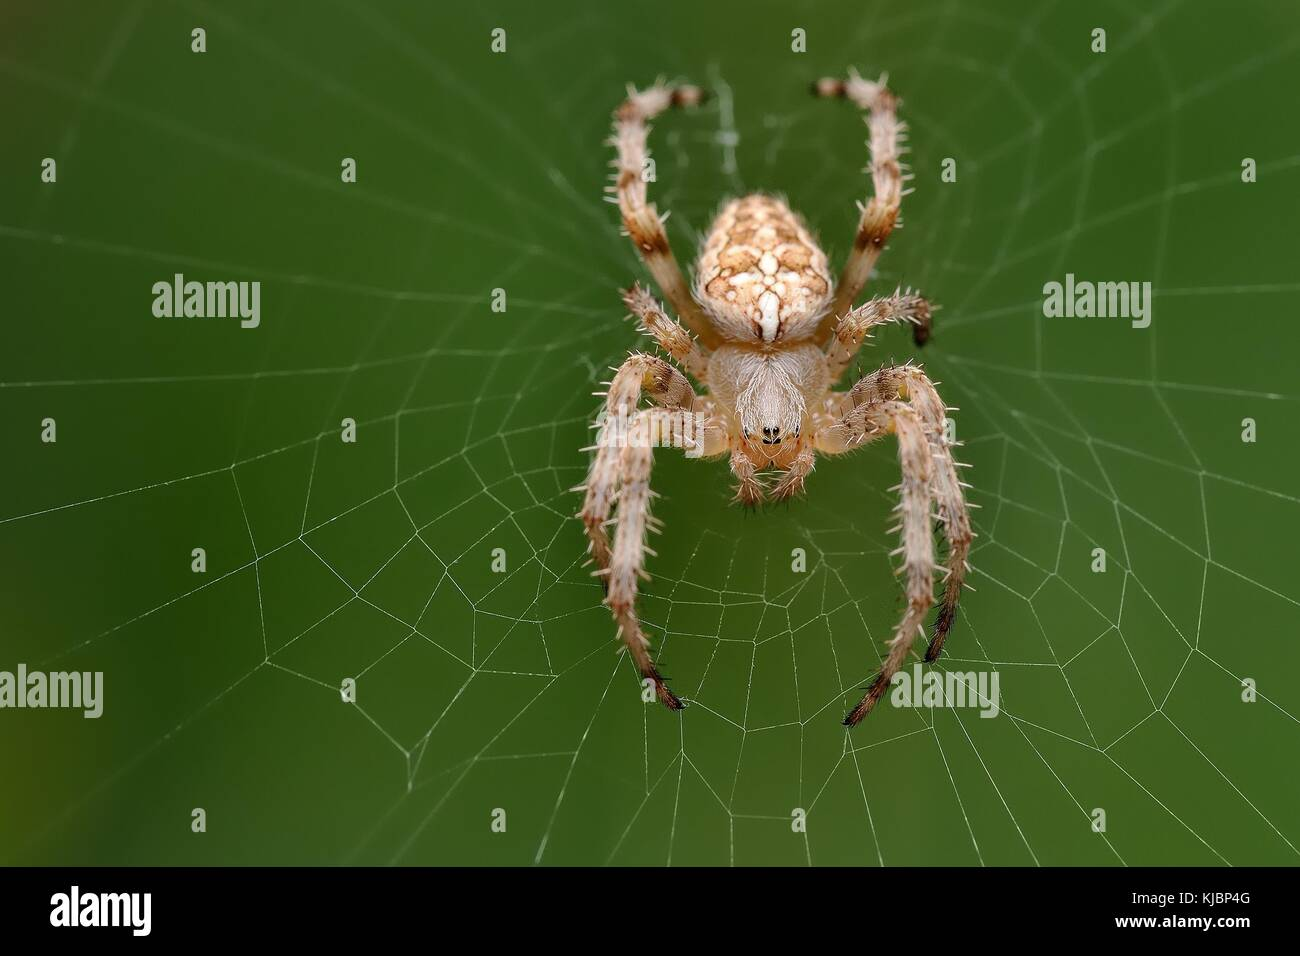 The european garden spider (Araneus diadematus) sitting in the spider net with green background. Big brown, light - Stock Image